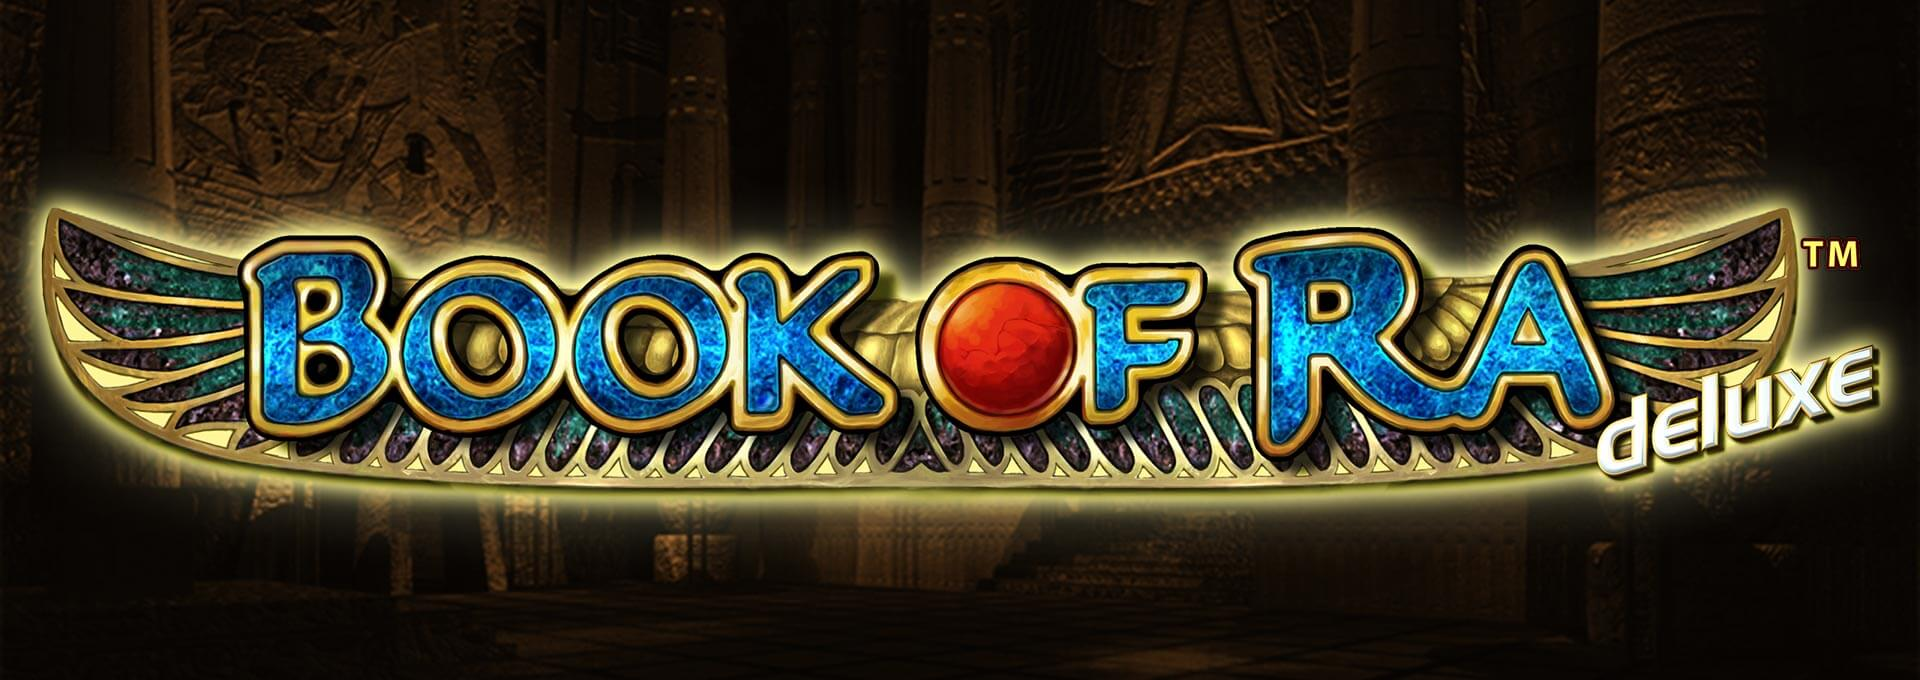 book of ra online casino book of ra deluxe